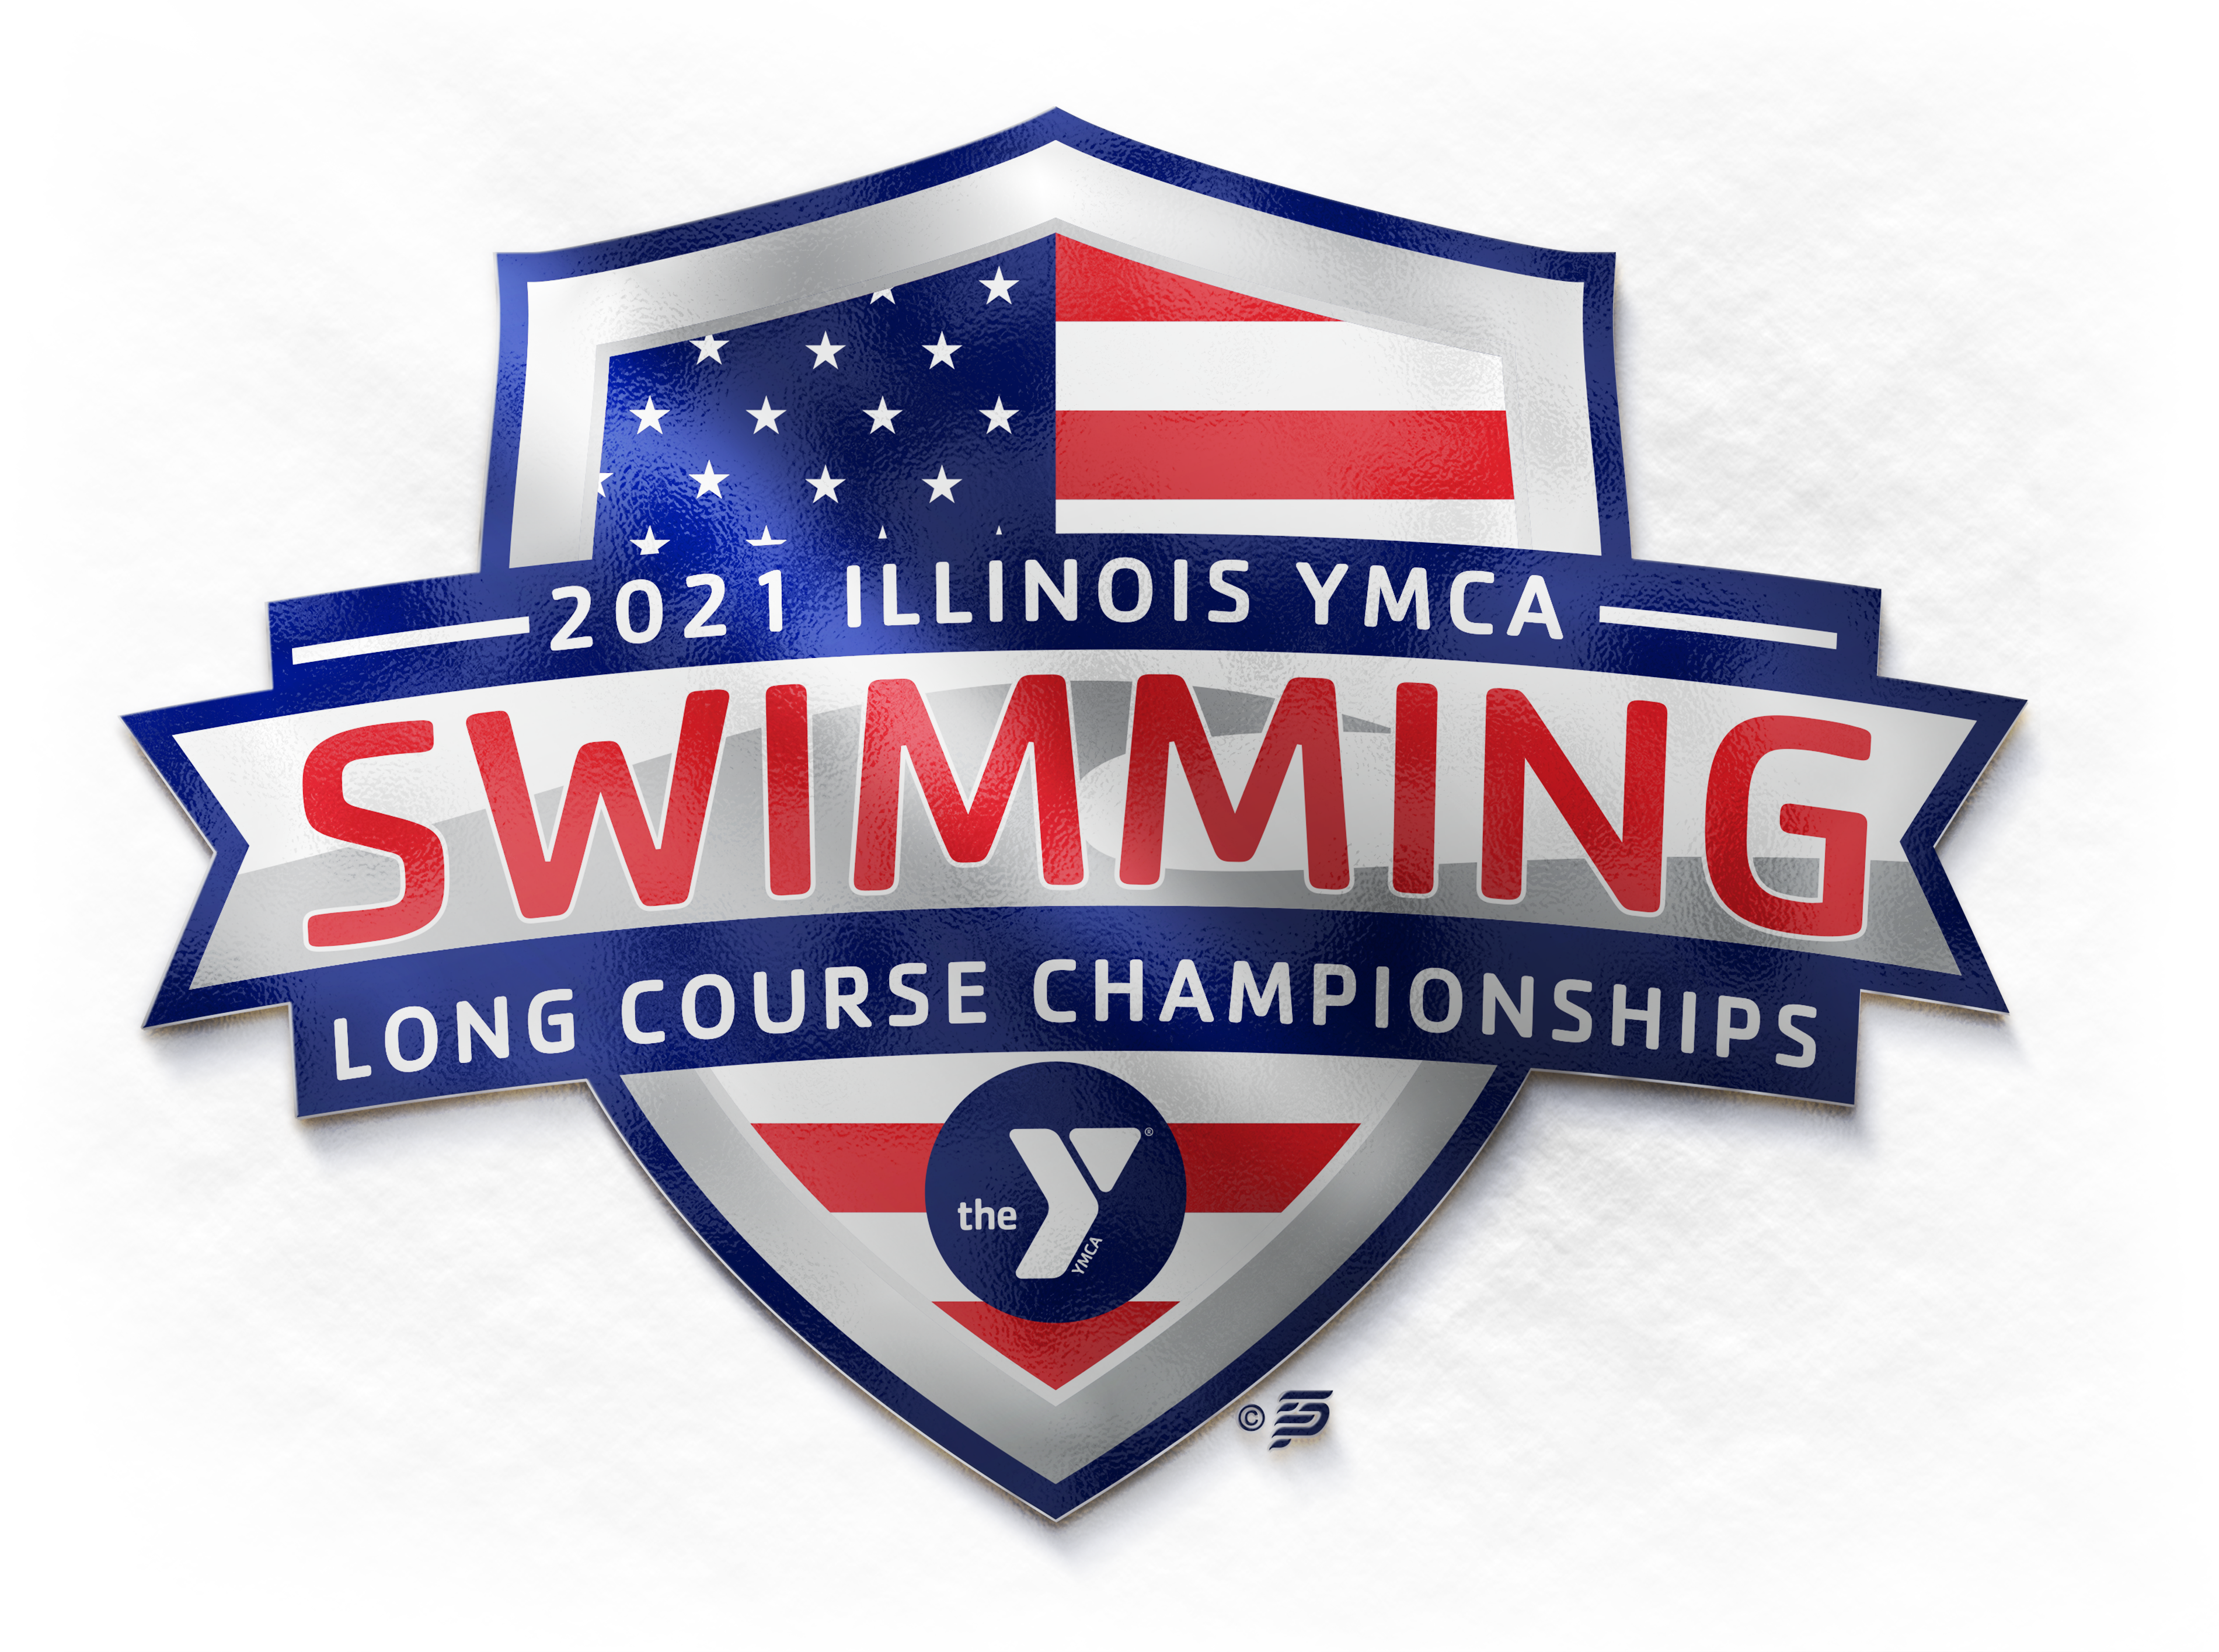 2021 Illinois YMCA Long Course Championships